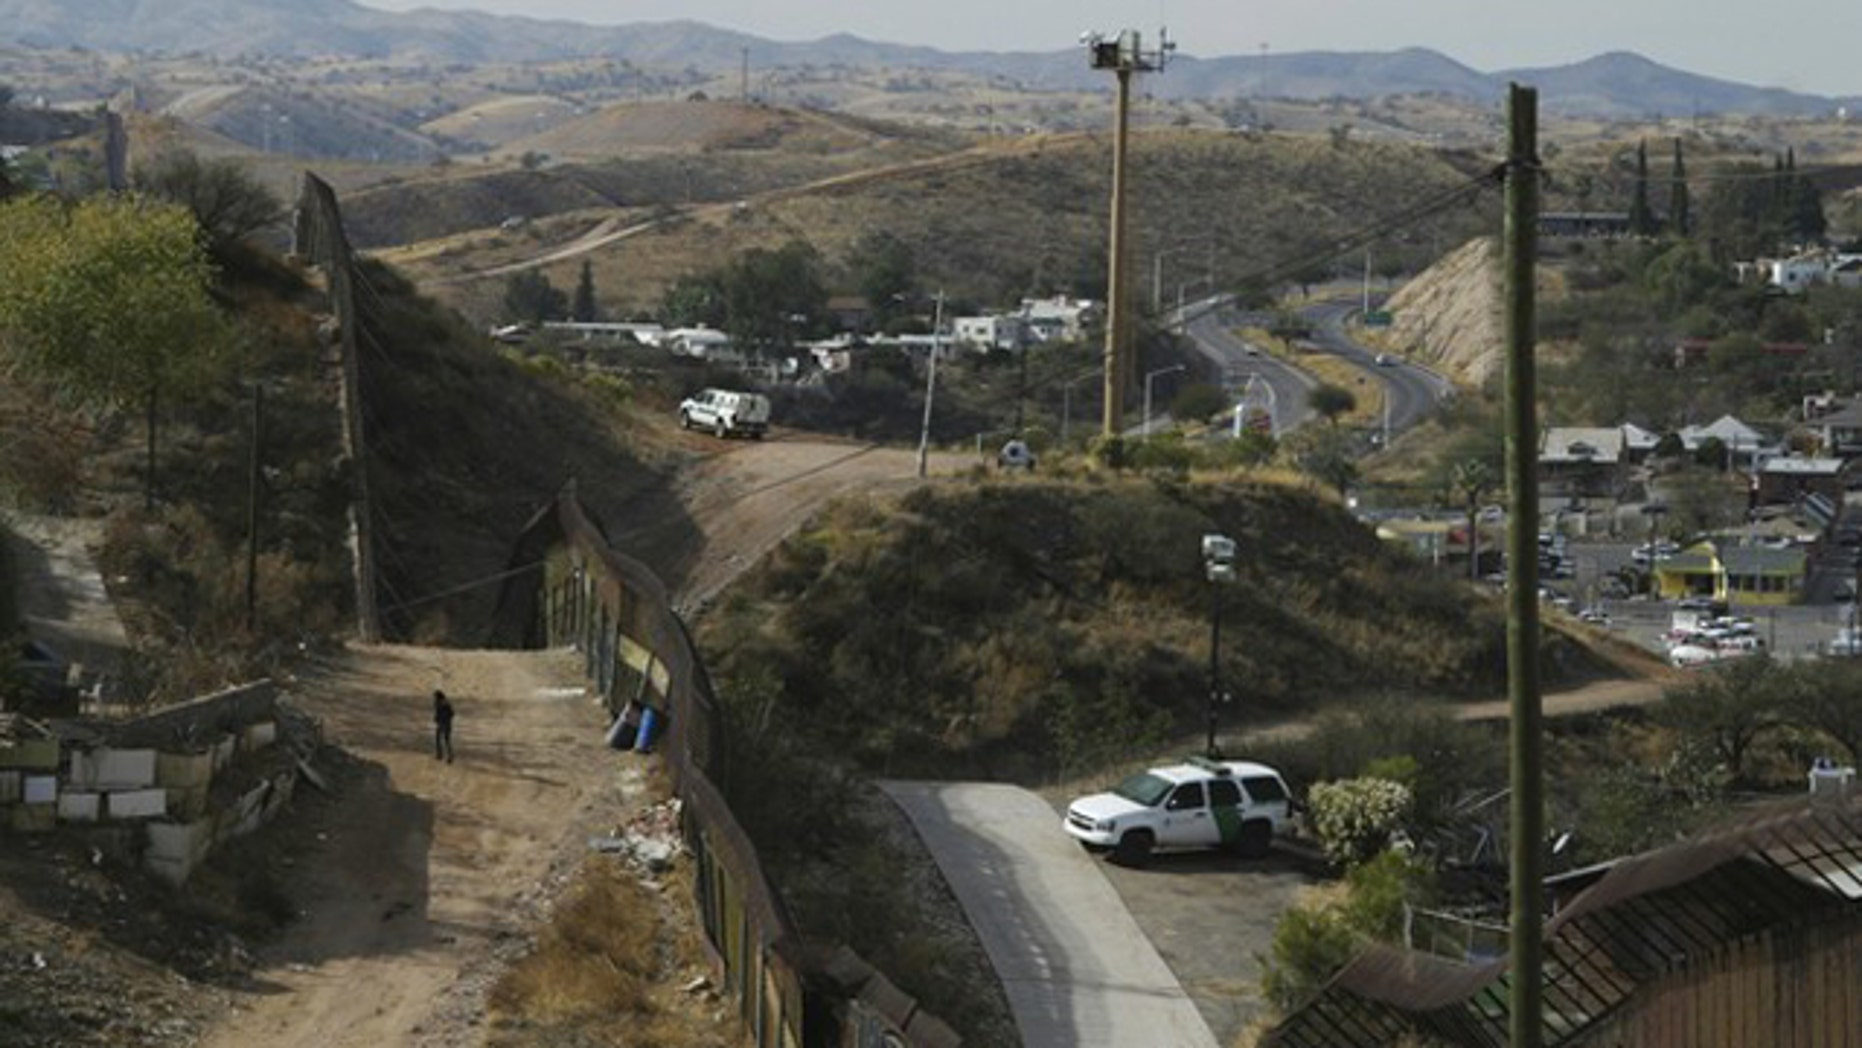 U.S. Border Patrol vehicles are seen from Nogales, Mexico, as they are parked near the border fence between the U.S. and Mexico Jan. 6.